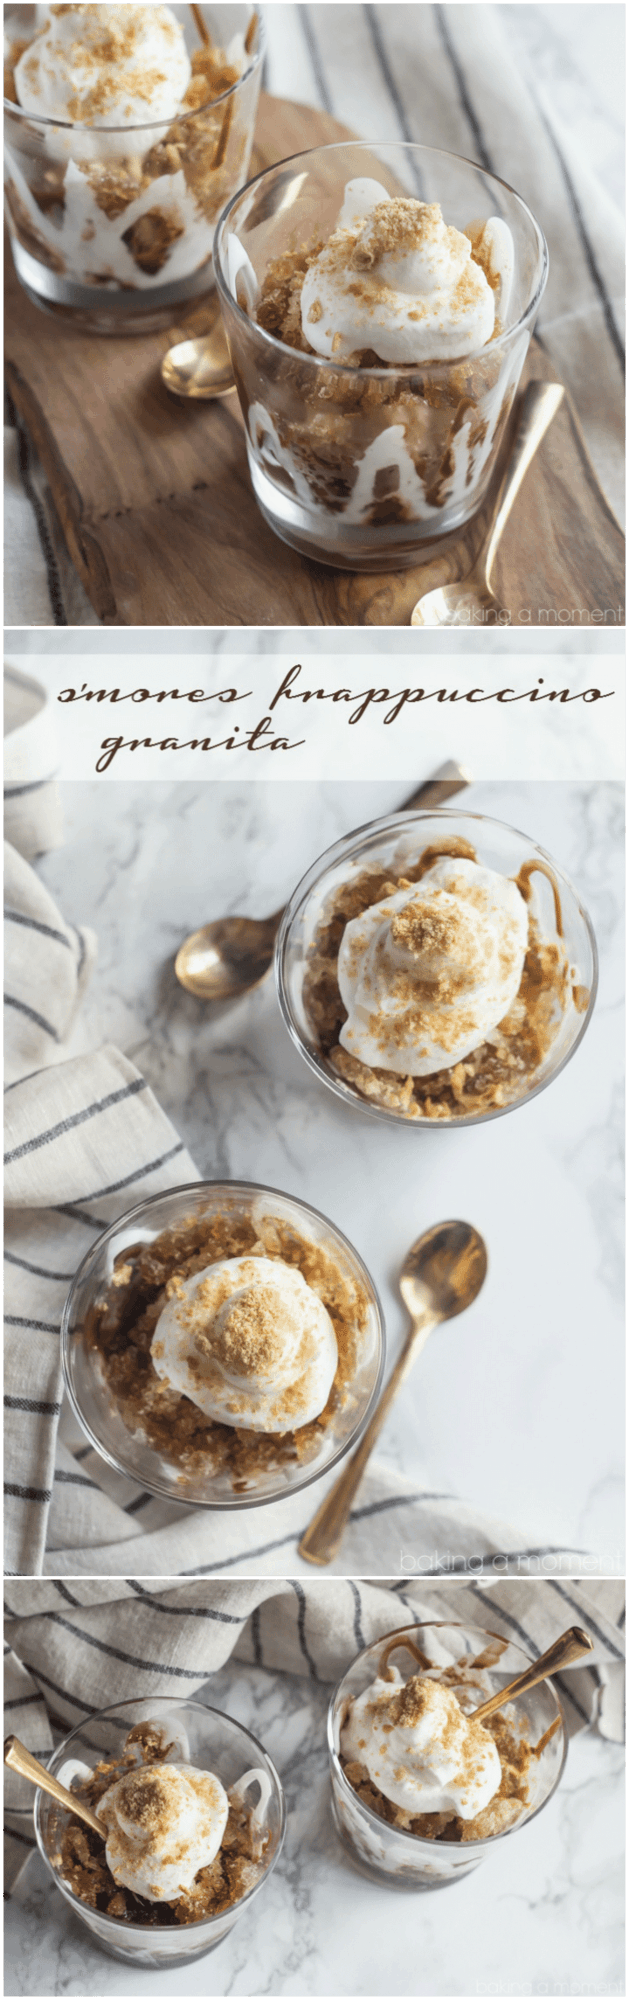 I loved that I could make coffee granita without having to scrape it every hour! This came together in minutes and it tasted just like a S'mores Frap only better. Such a refreshing summer pick-me-up!